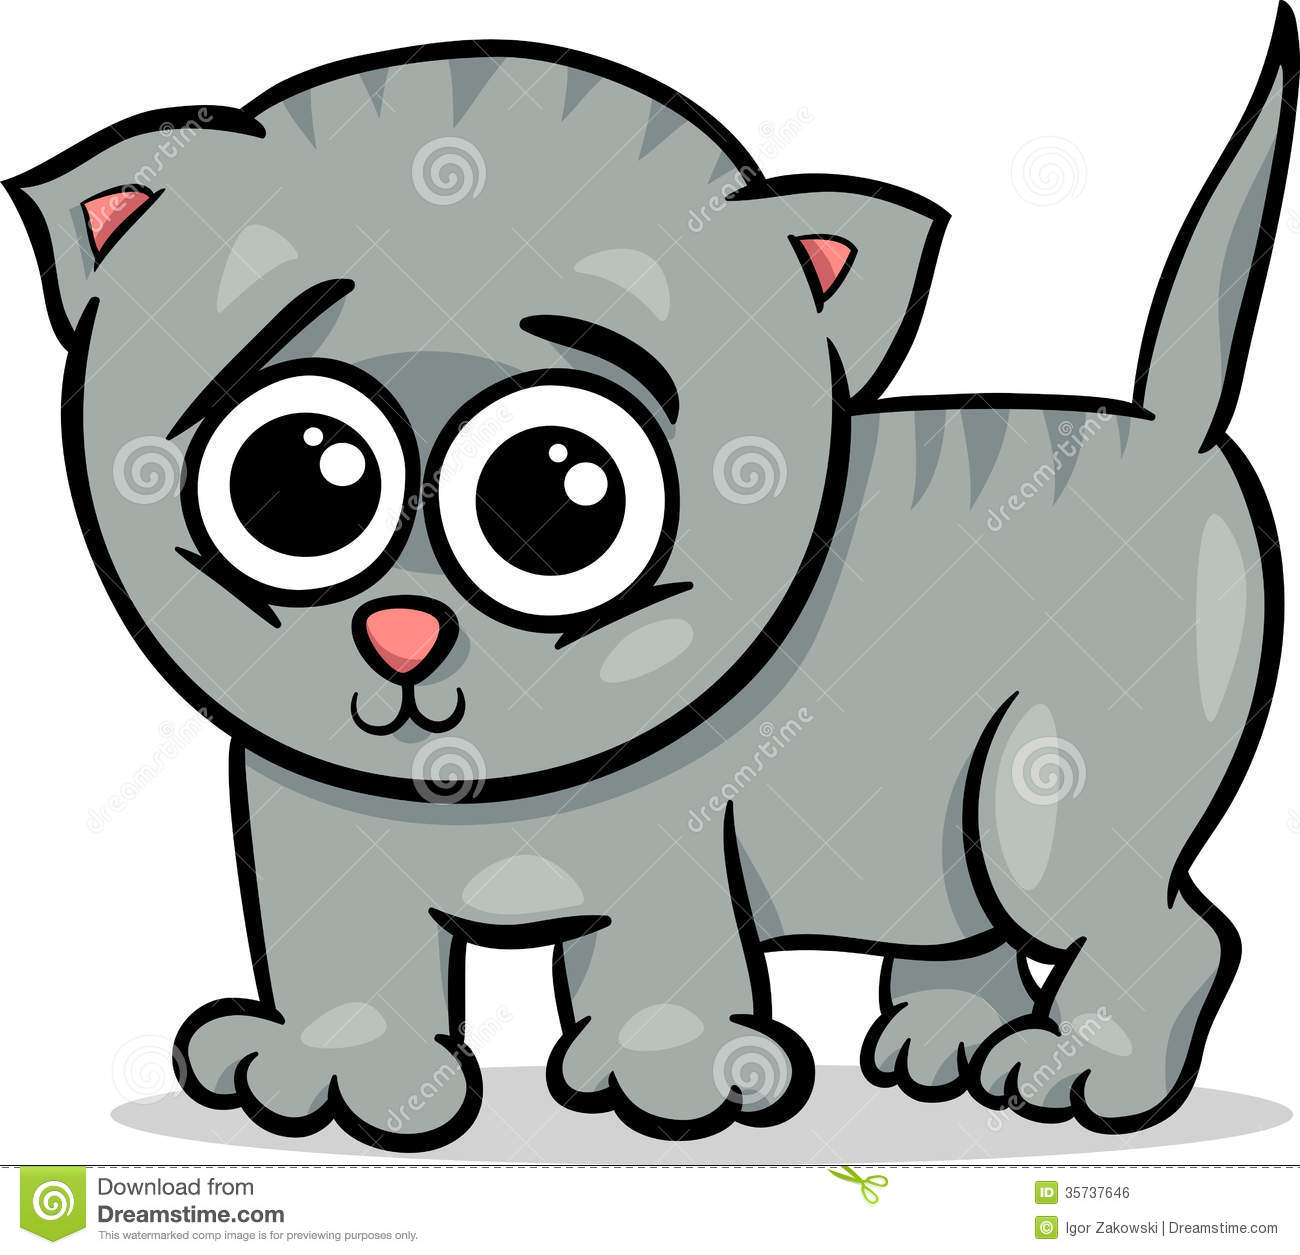 Baby Cat Kitten Cartoon Illustration Royalty Free Stock Image - Image ...